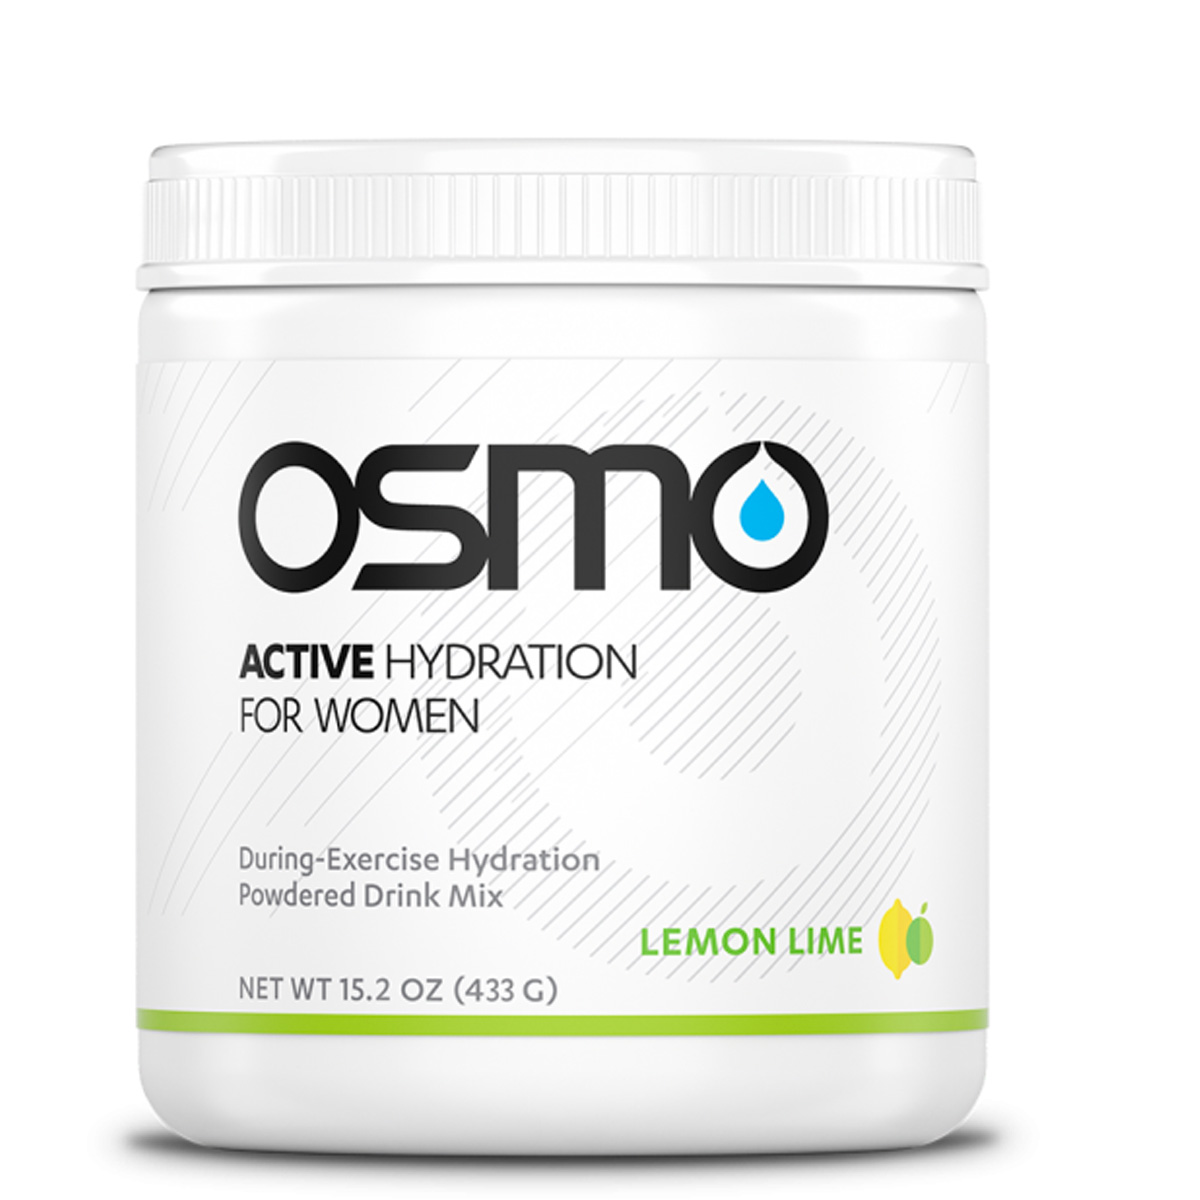 Osmo OSMO - Active Hydration for Women (40 Serv Tub) - Lemon Lime